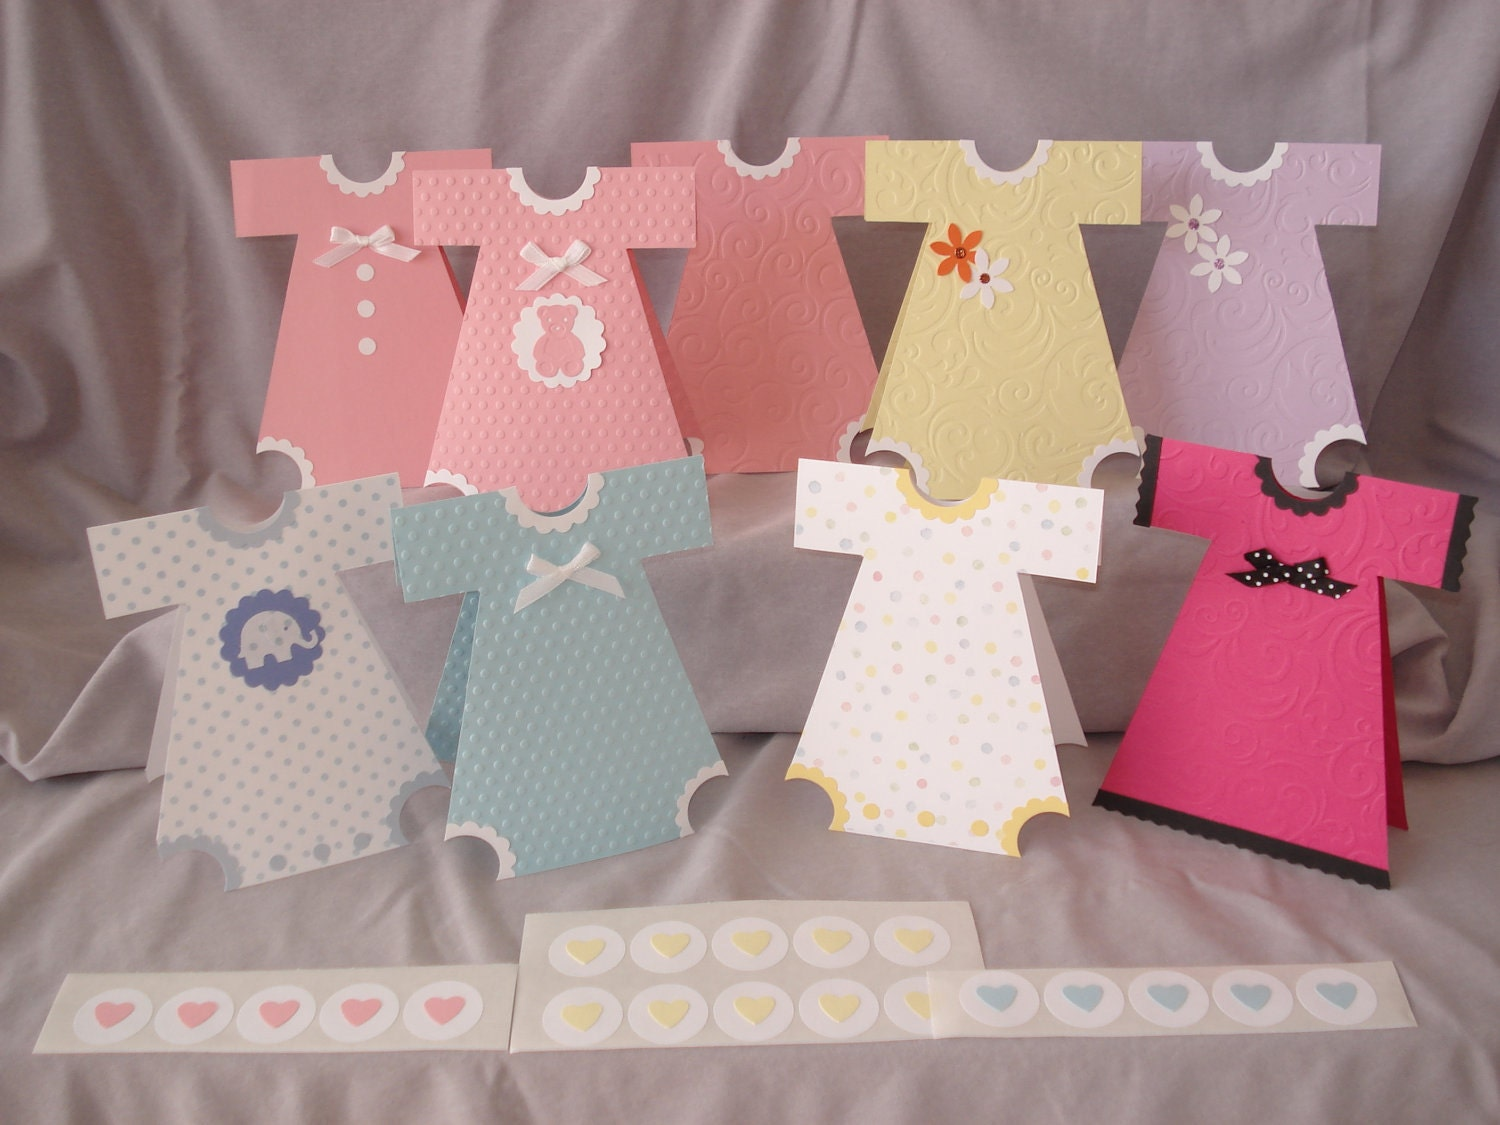 Invitation ideas for baby shower handmade crafts - Home made baby shower decorations ...